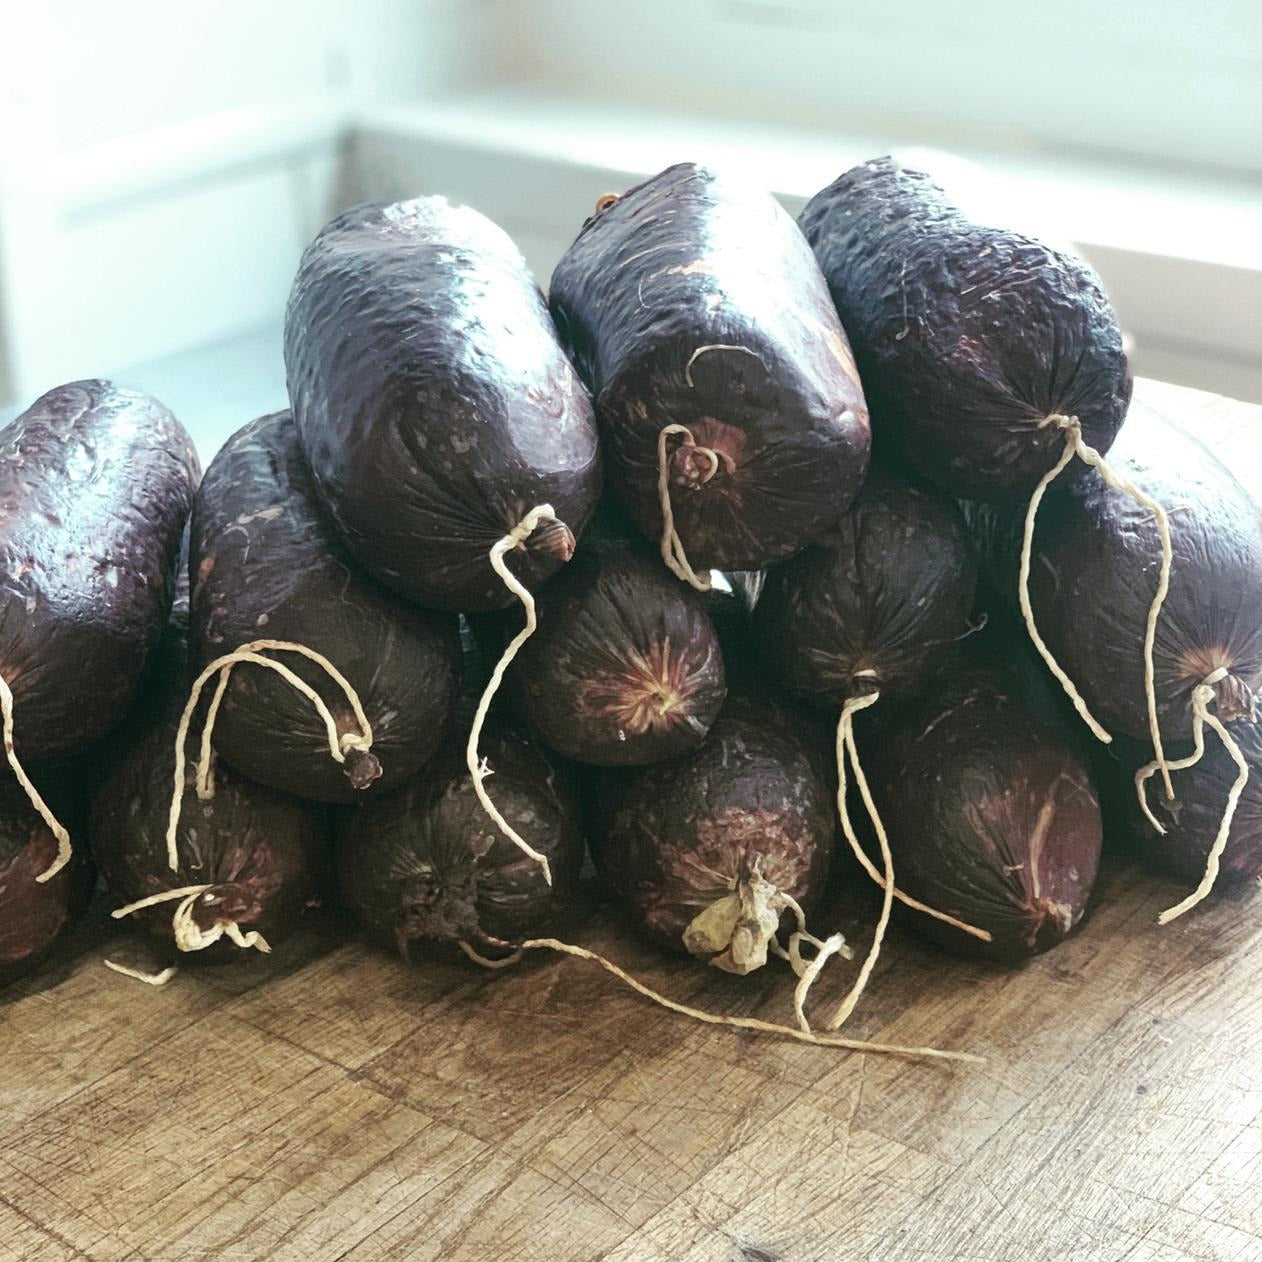 Black Pudding - The Fat Pig Farm